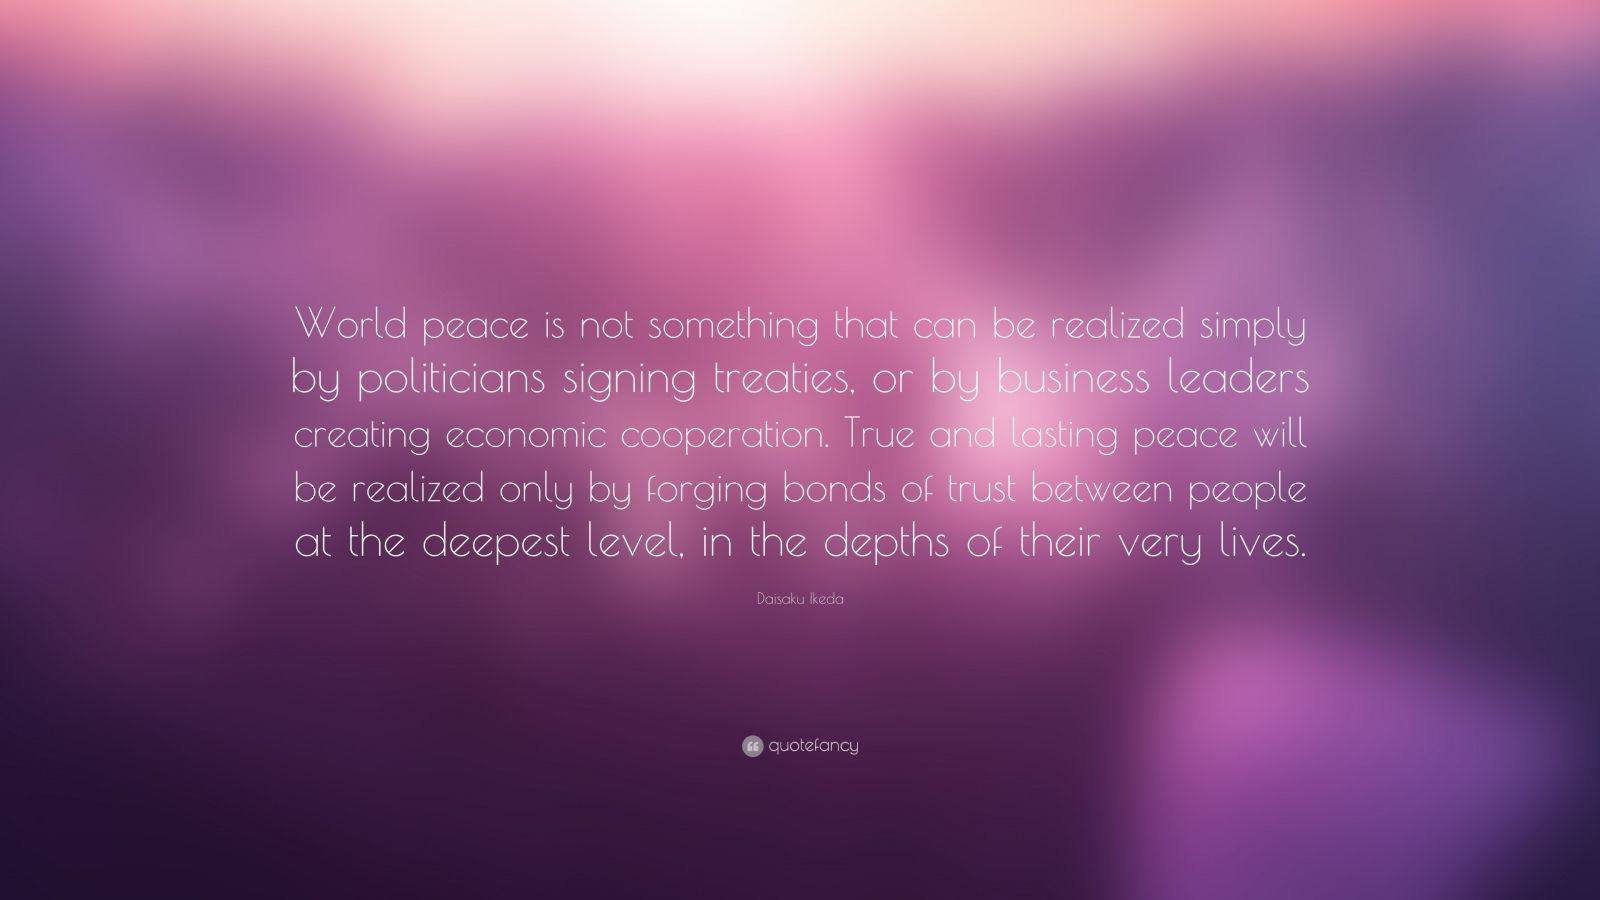 """Daisaku Ikeda Quote: """"World peace is not something that can be realized simply by politicians signing treaties, or by business leaders creating economic cooperation. True and lasting peace will be realized only by forging bonds of trust between people at the deepest level, in the depths of their very lives."""""""